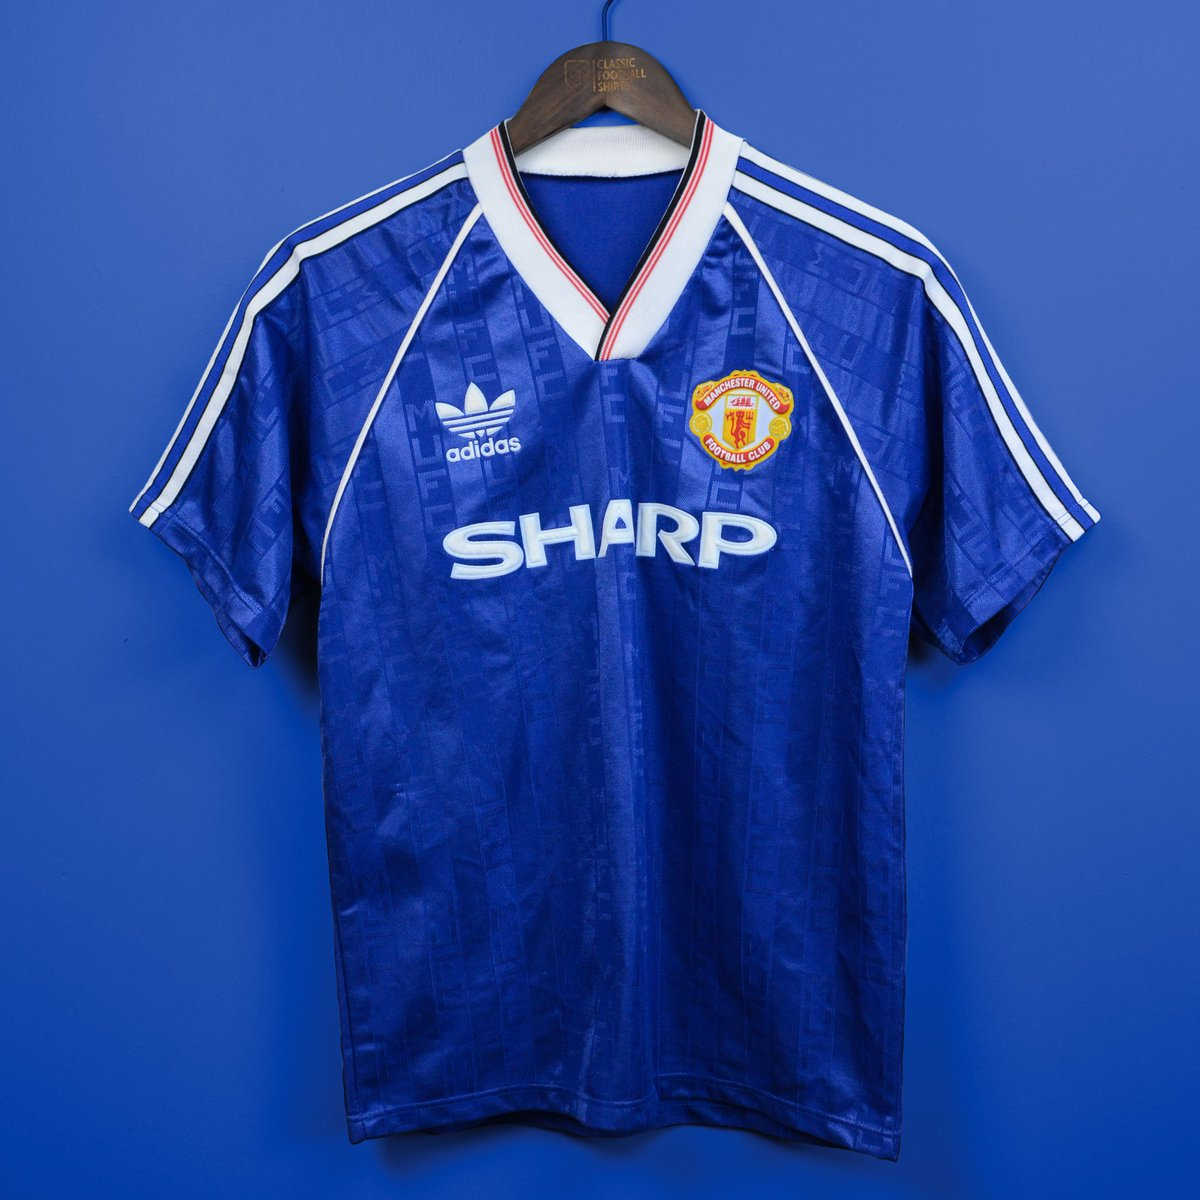 a5397f2e2e9 Man United in blue 1986-90  Adidas produced stunning blue kits in the 1980s  including these two designs from 86-88 and 88-90.